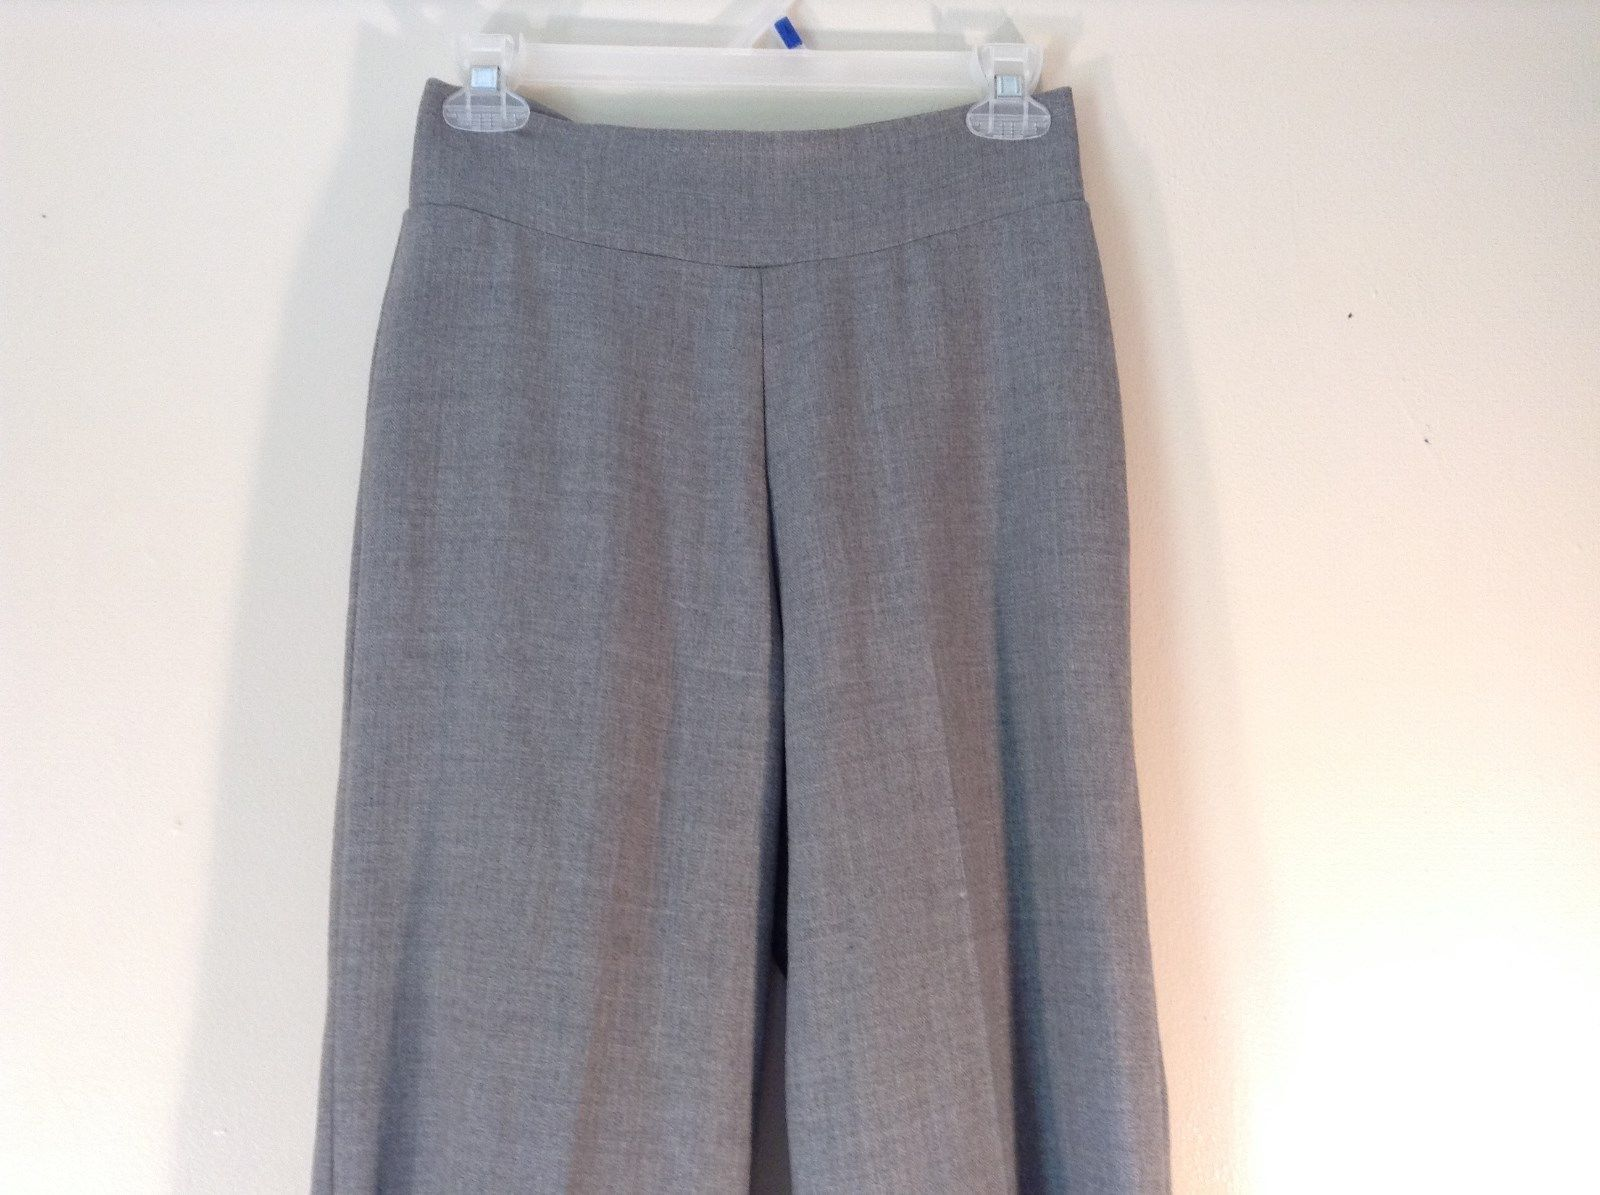 ANKA New York Size Small Casual Gray Pants 100 Percent Wool Back Zipper Closure